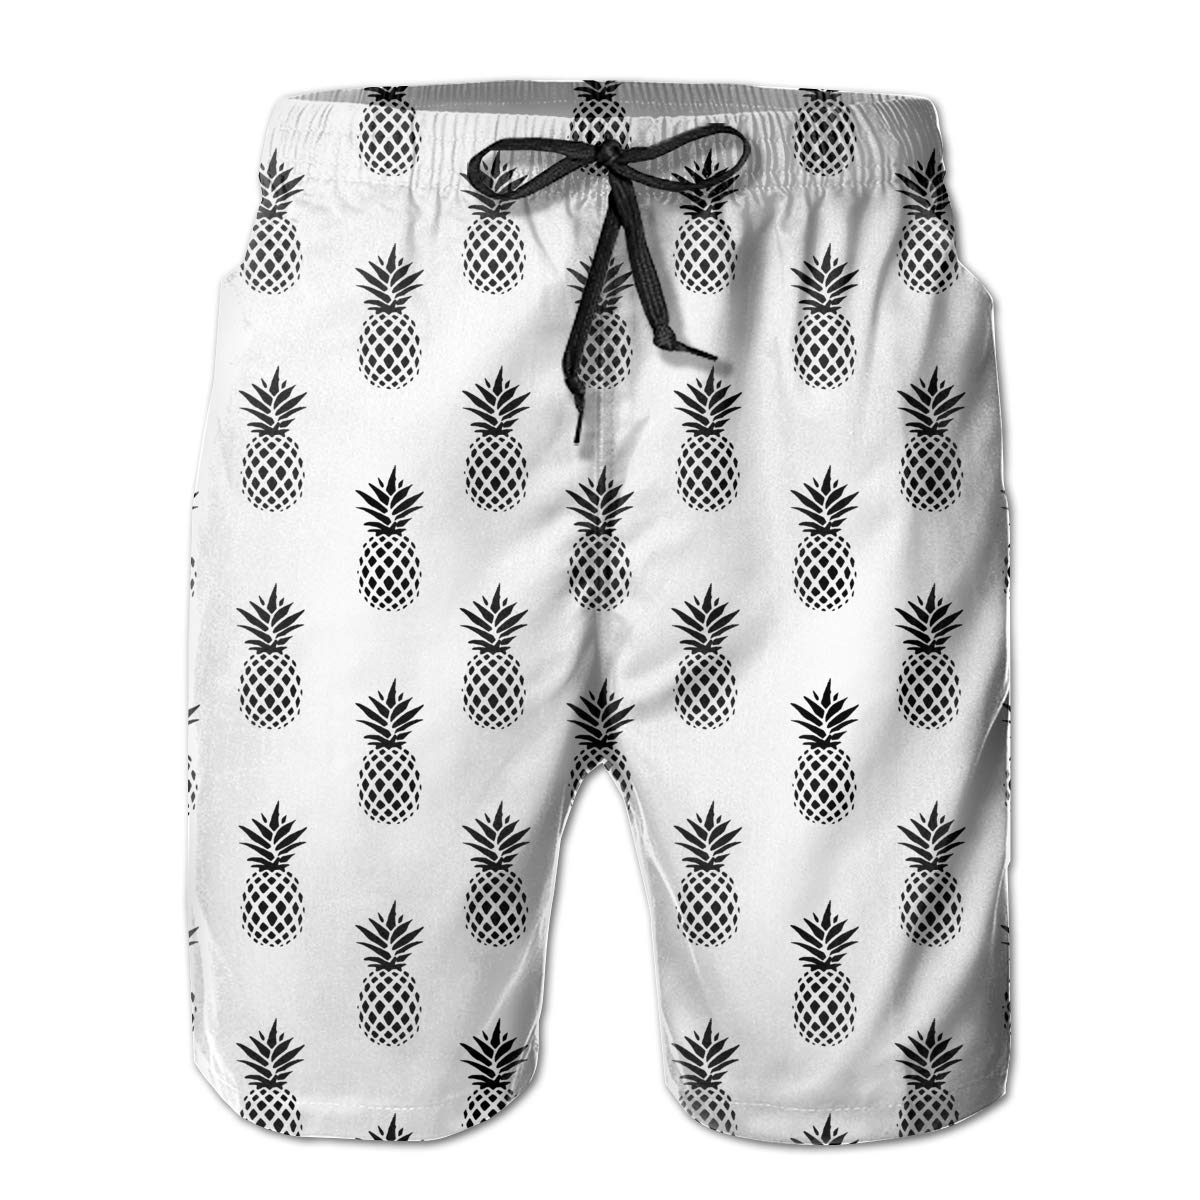 UHT28DG Minimalistic Pineapples Pattern Mens Beach Shorts Quick Dry Swimming Shorts